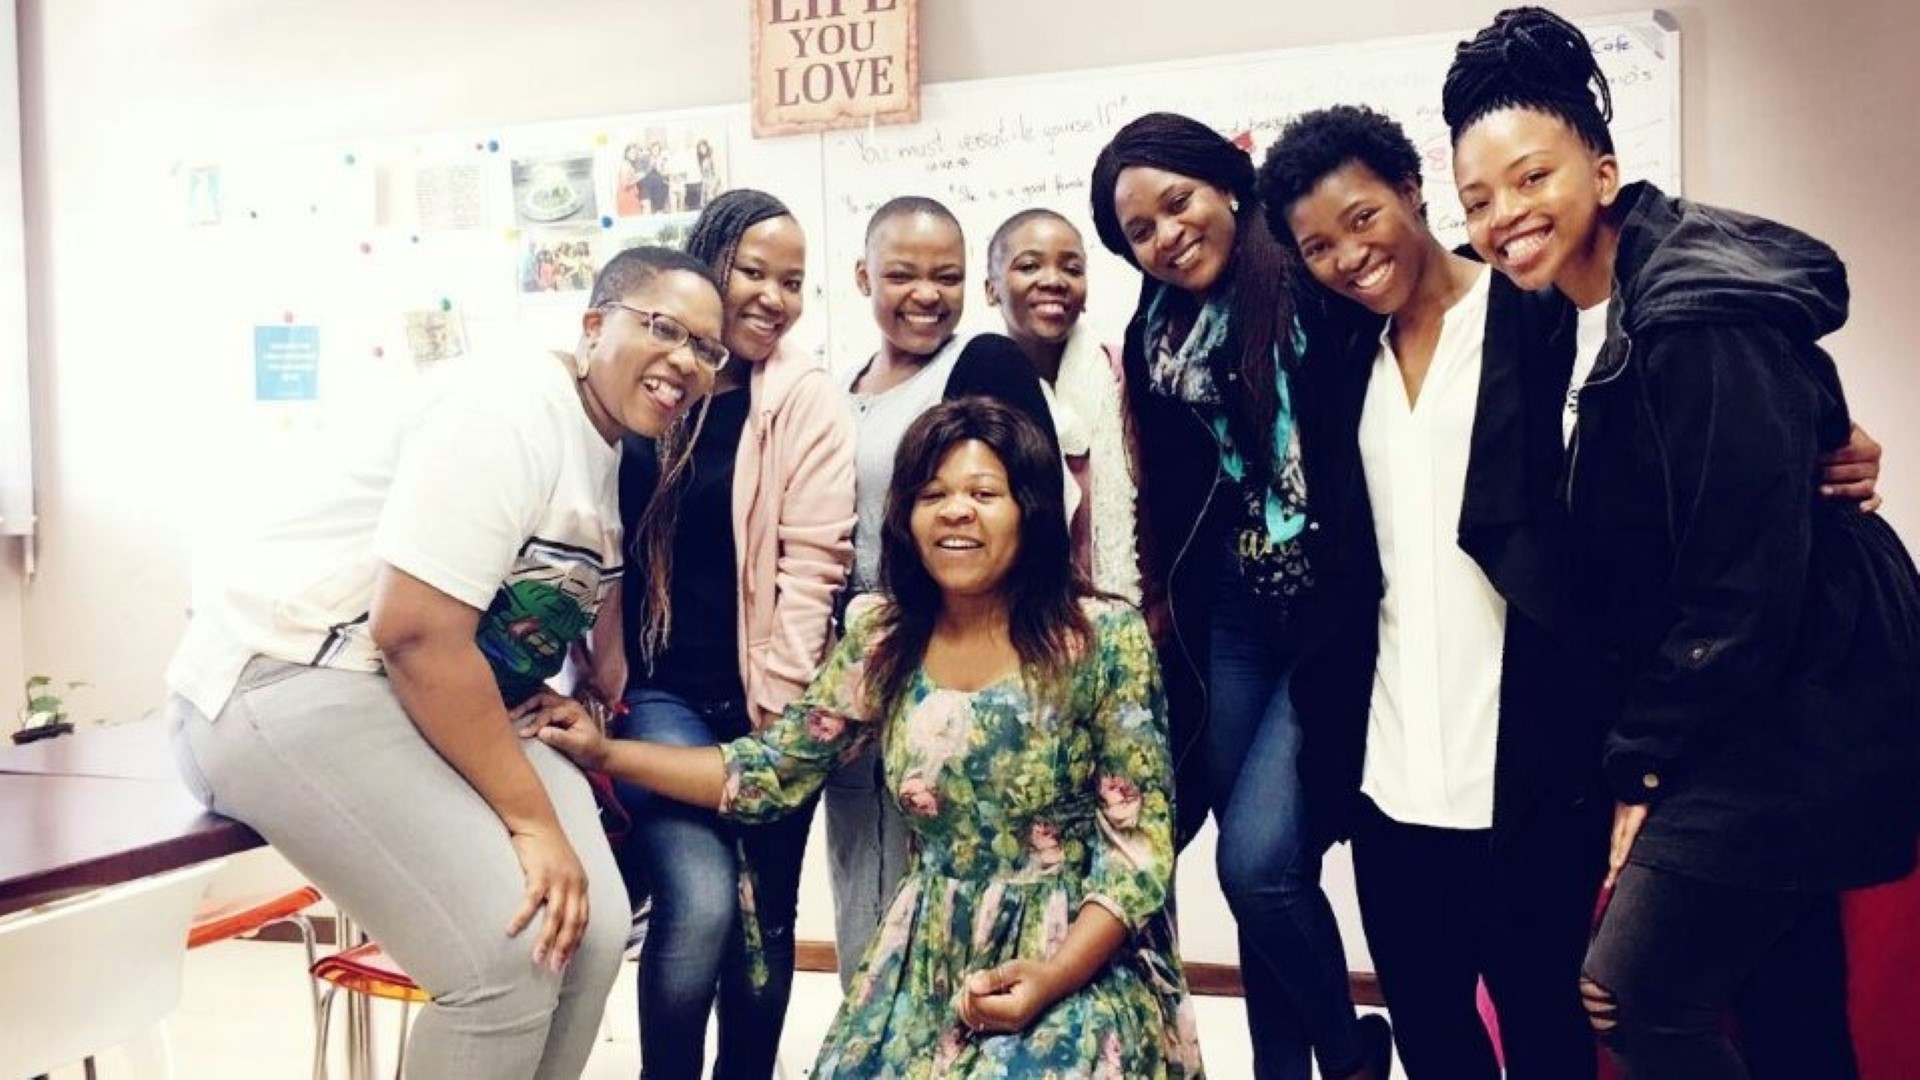 UKZN Students and their mentors from the Silibona Educational Trust at their first meeting in 2018. From left to right on the top row are Desiree Mzimela (Mentor), Nosipho Gabela, Samkelisiwe Mkhize, Futhi Mchunu (Mentor), Melda Magolela (Mentor), Nothando Maphumulo, Nobuhle Magadlela and Andiswa Mbatha (Mentor).